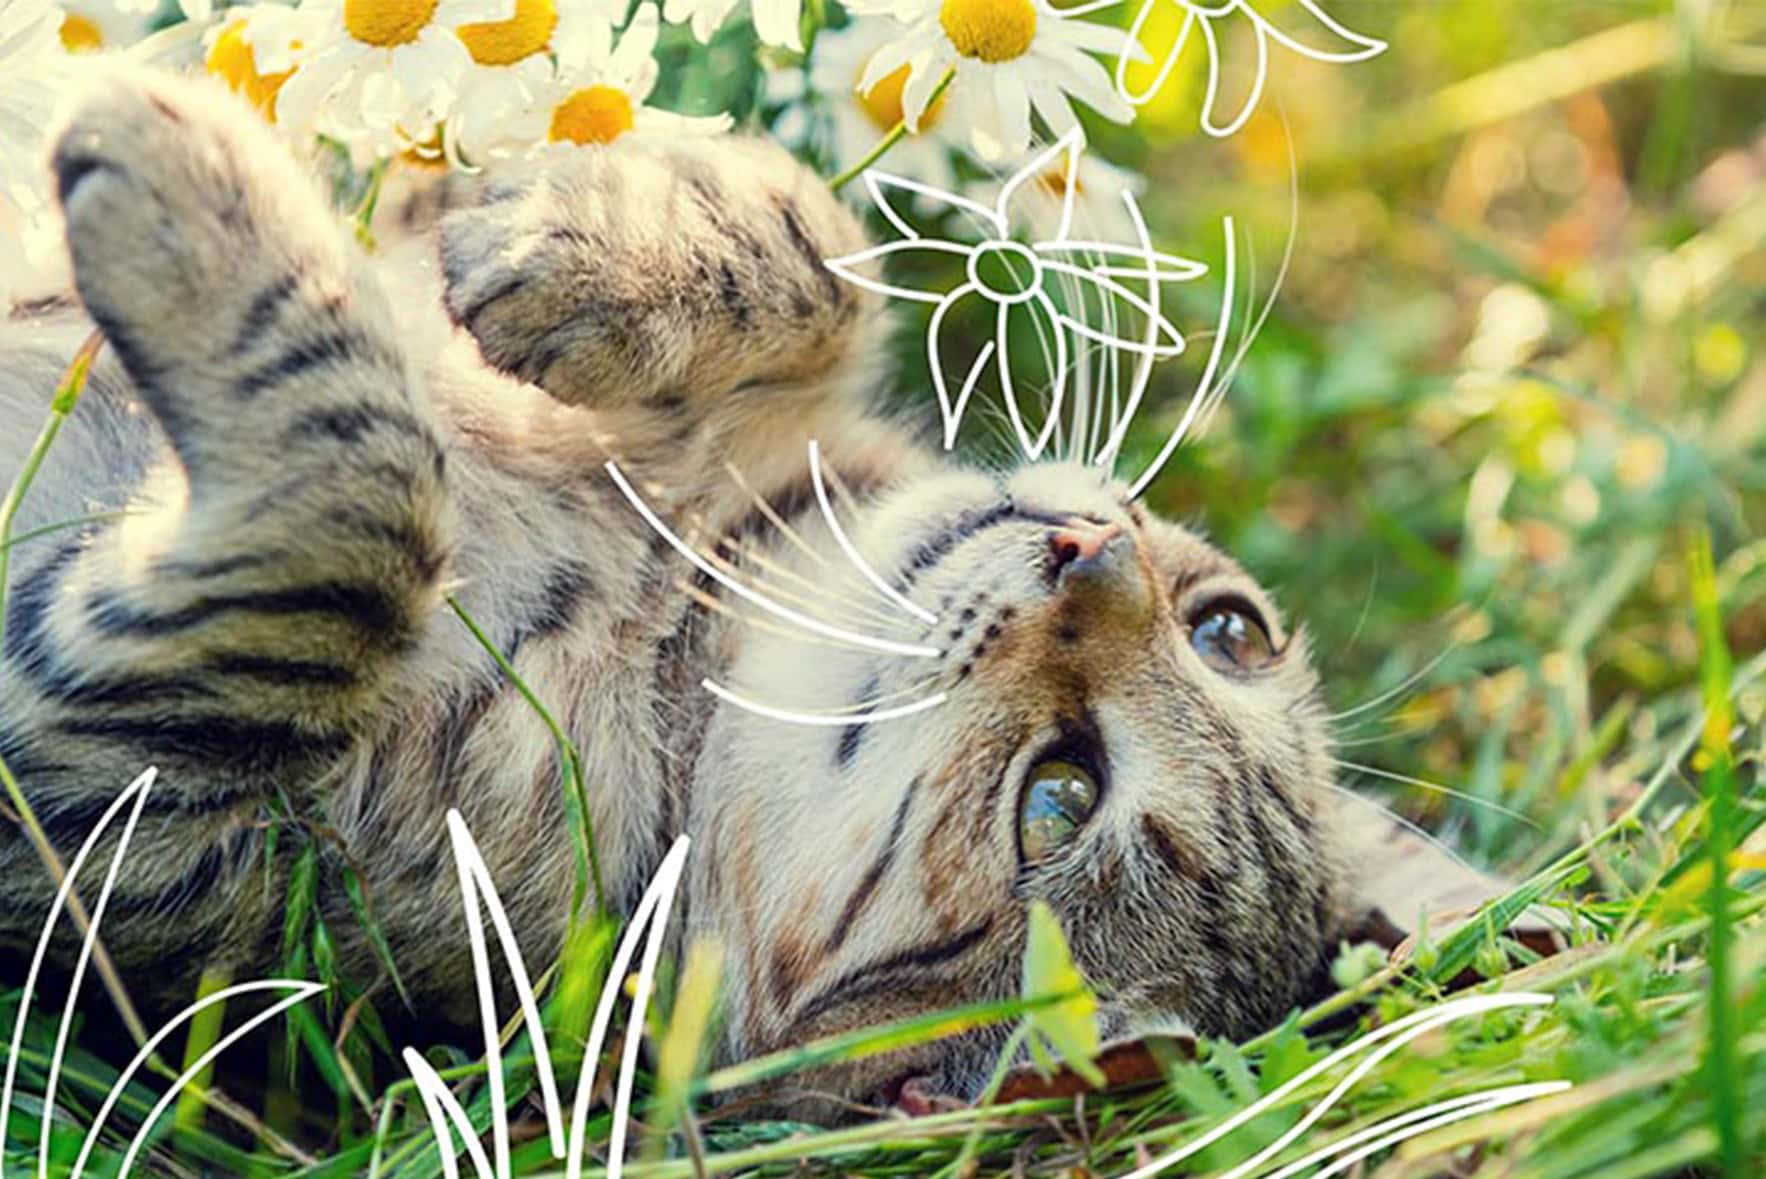 A cat lies in the grass - cat dental health products